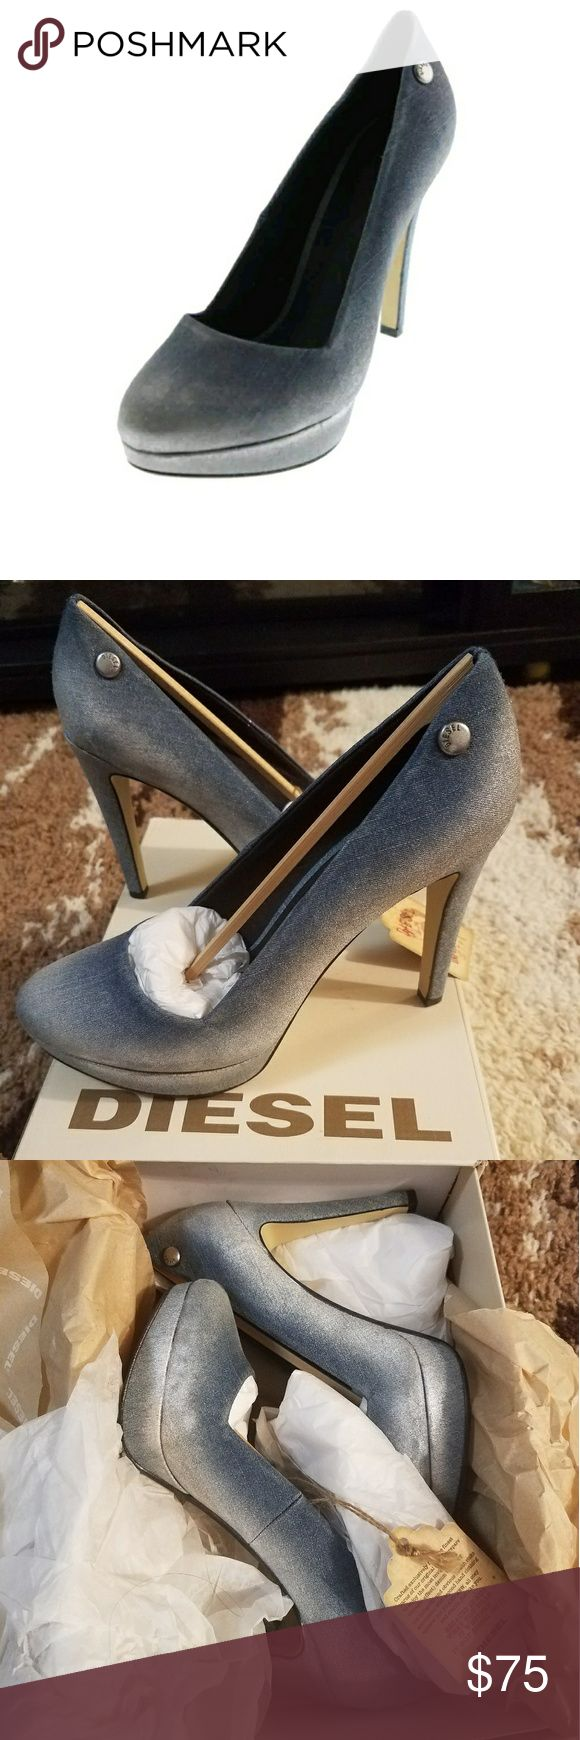 """🎉HP🎉DIESEL DENIM FAME KRISTALY PLATFORM These knockout heels are absolutely gorgeous!! The color is listed as Indigo/Silver or """"Krystaly Blue"""" and that is the perfect name for these shimmering beauties. They are a distressed denim kicked up a notch with a silver shimmer.  The heel is slim with height listed at 4 3/4"""" with platform height of 3/4"""". DIESEL Shoes Platforms"""